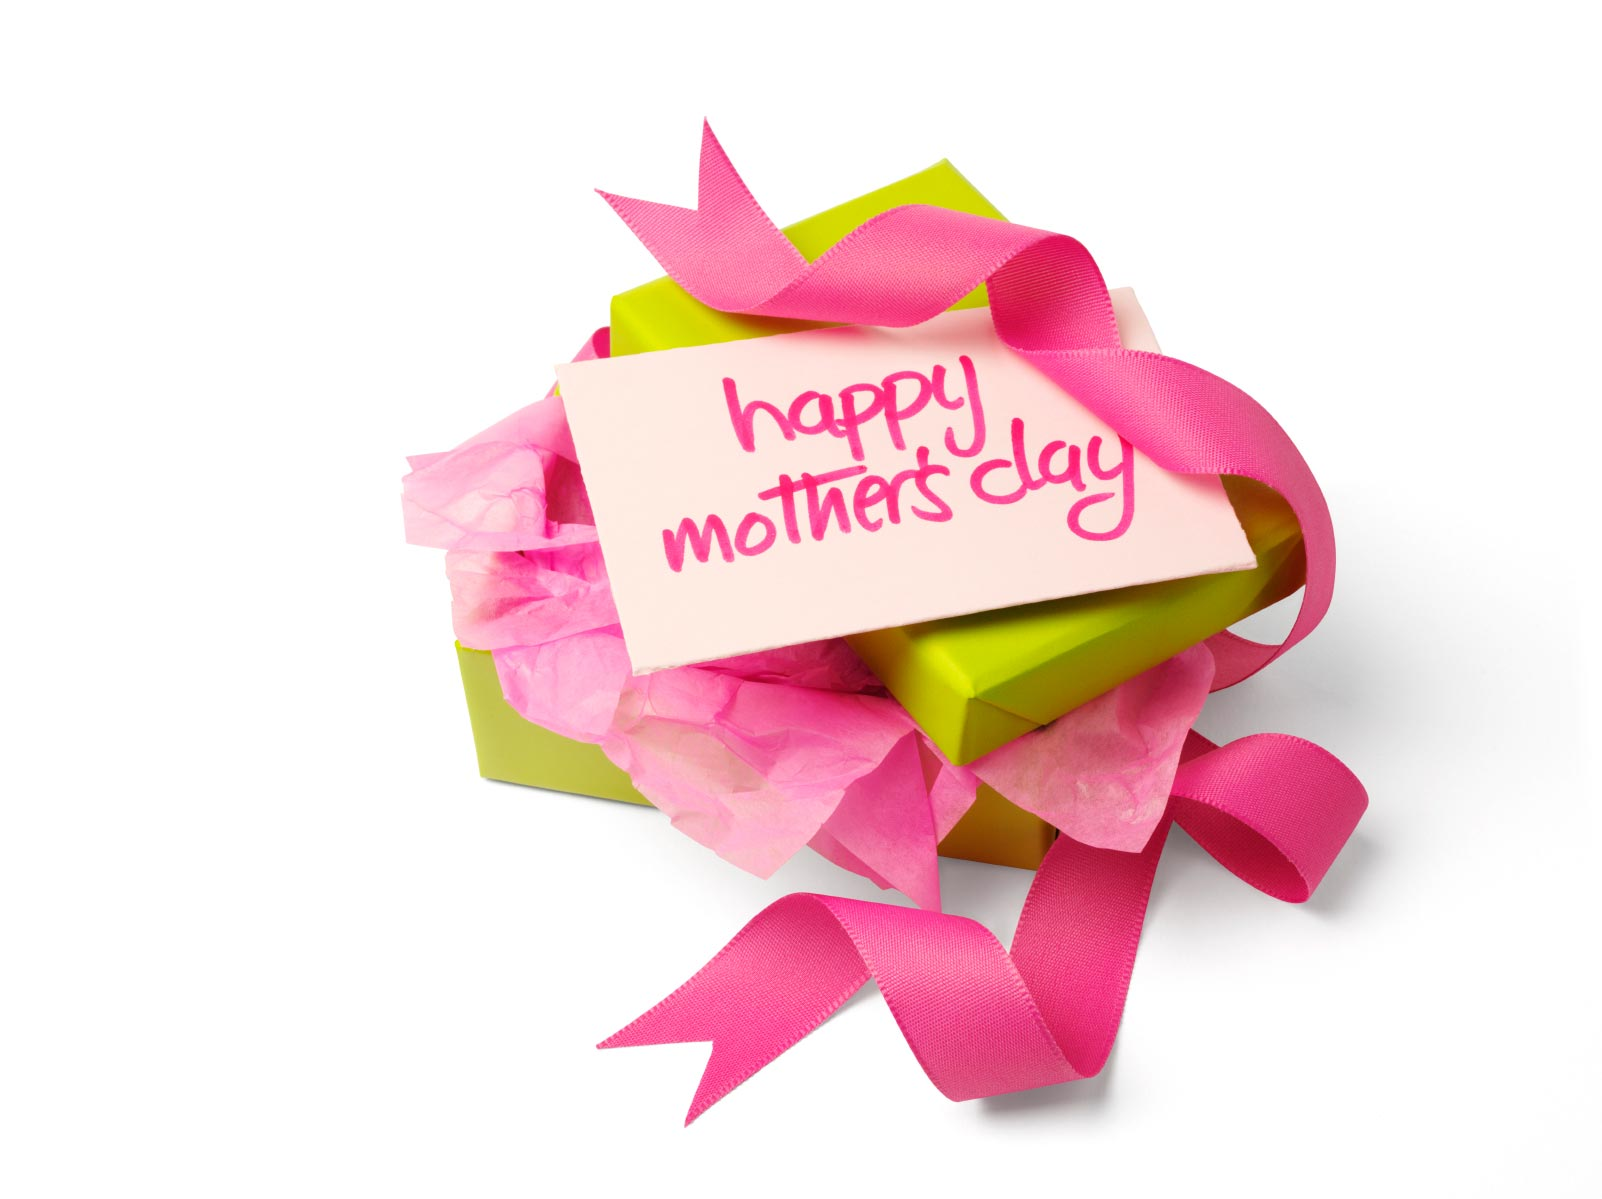 Happy Mothers Day Wishes Wallpaper